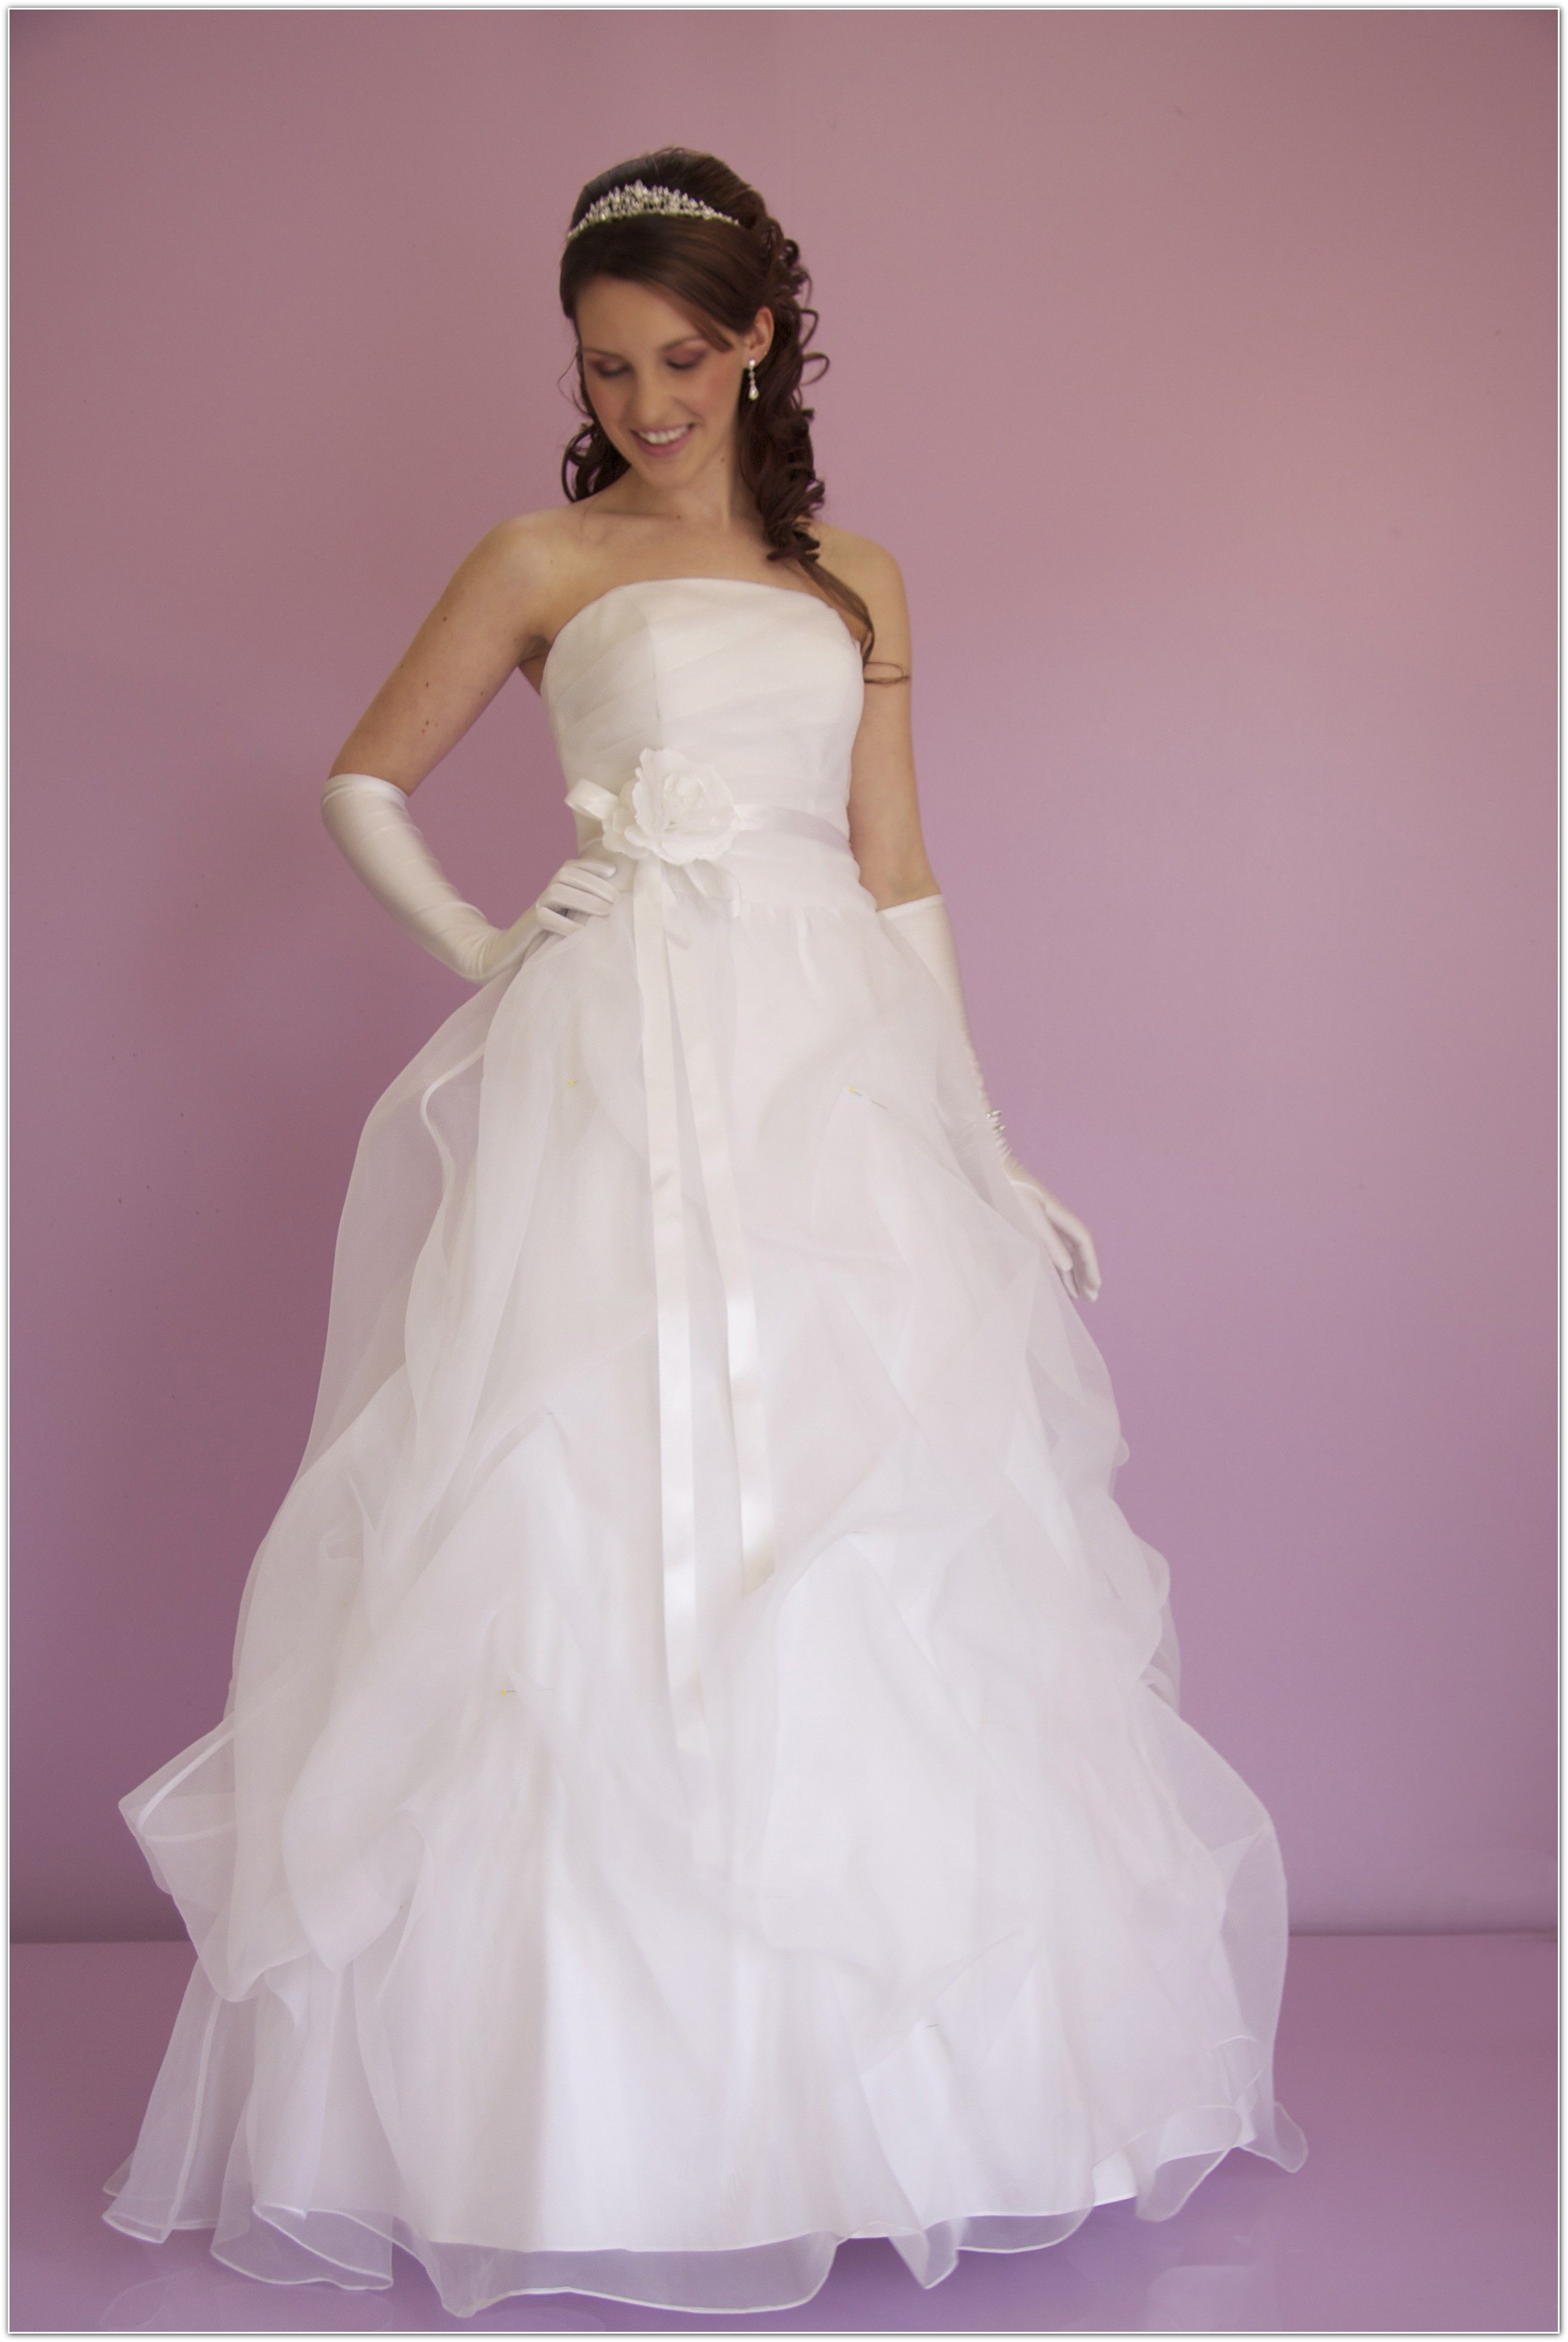 How to Make Your Own Wedding Dress Wedding dresses